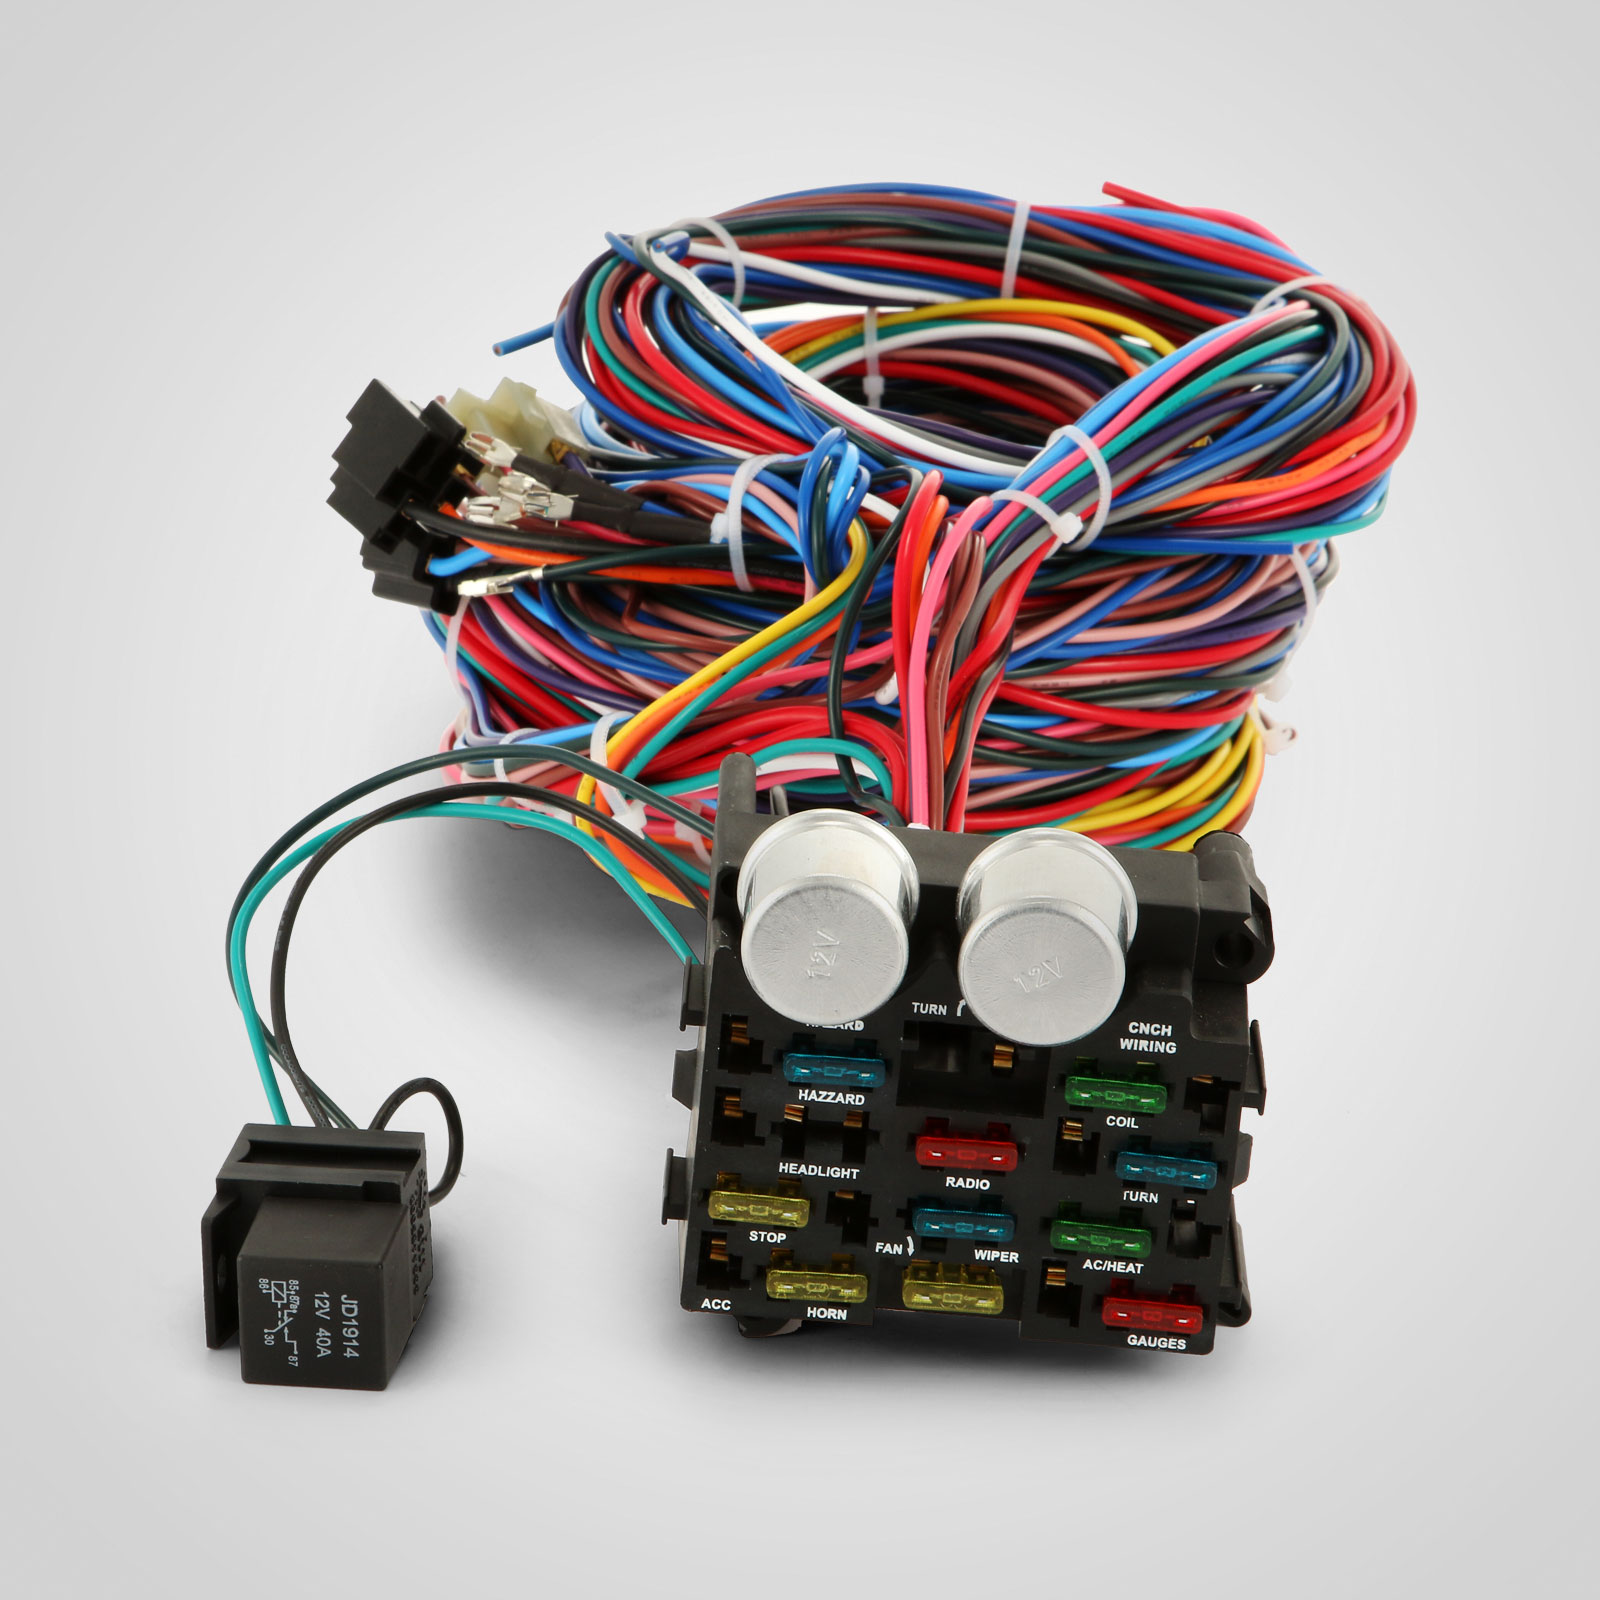 Standard Marine Wiring Color Code On Faulty Electrical Panel Wiring